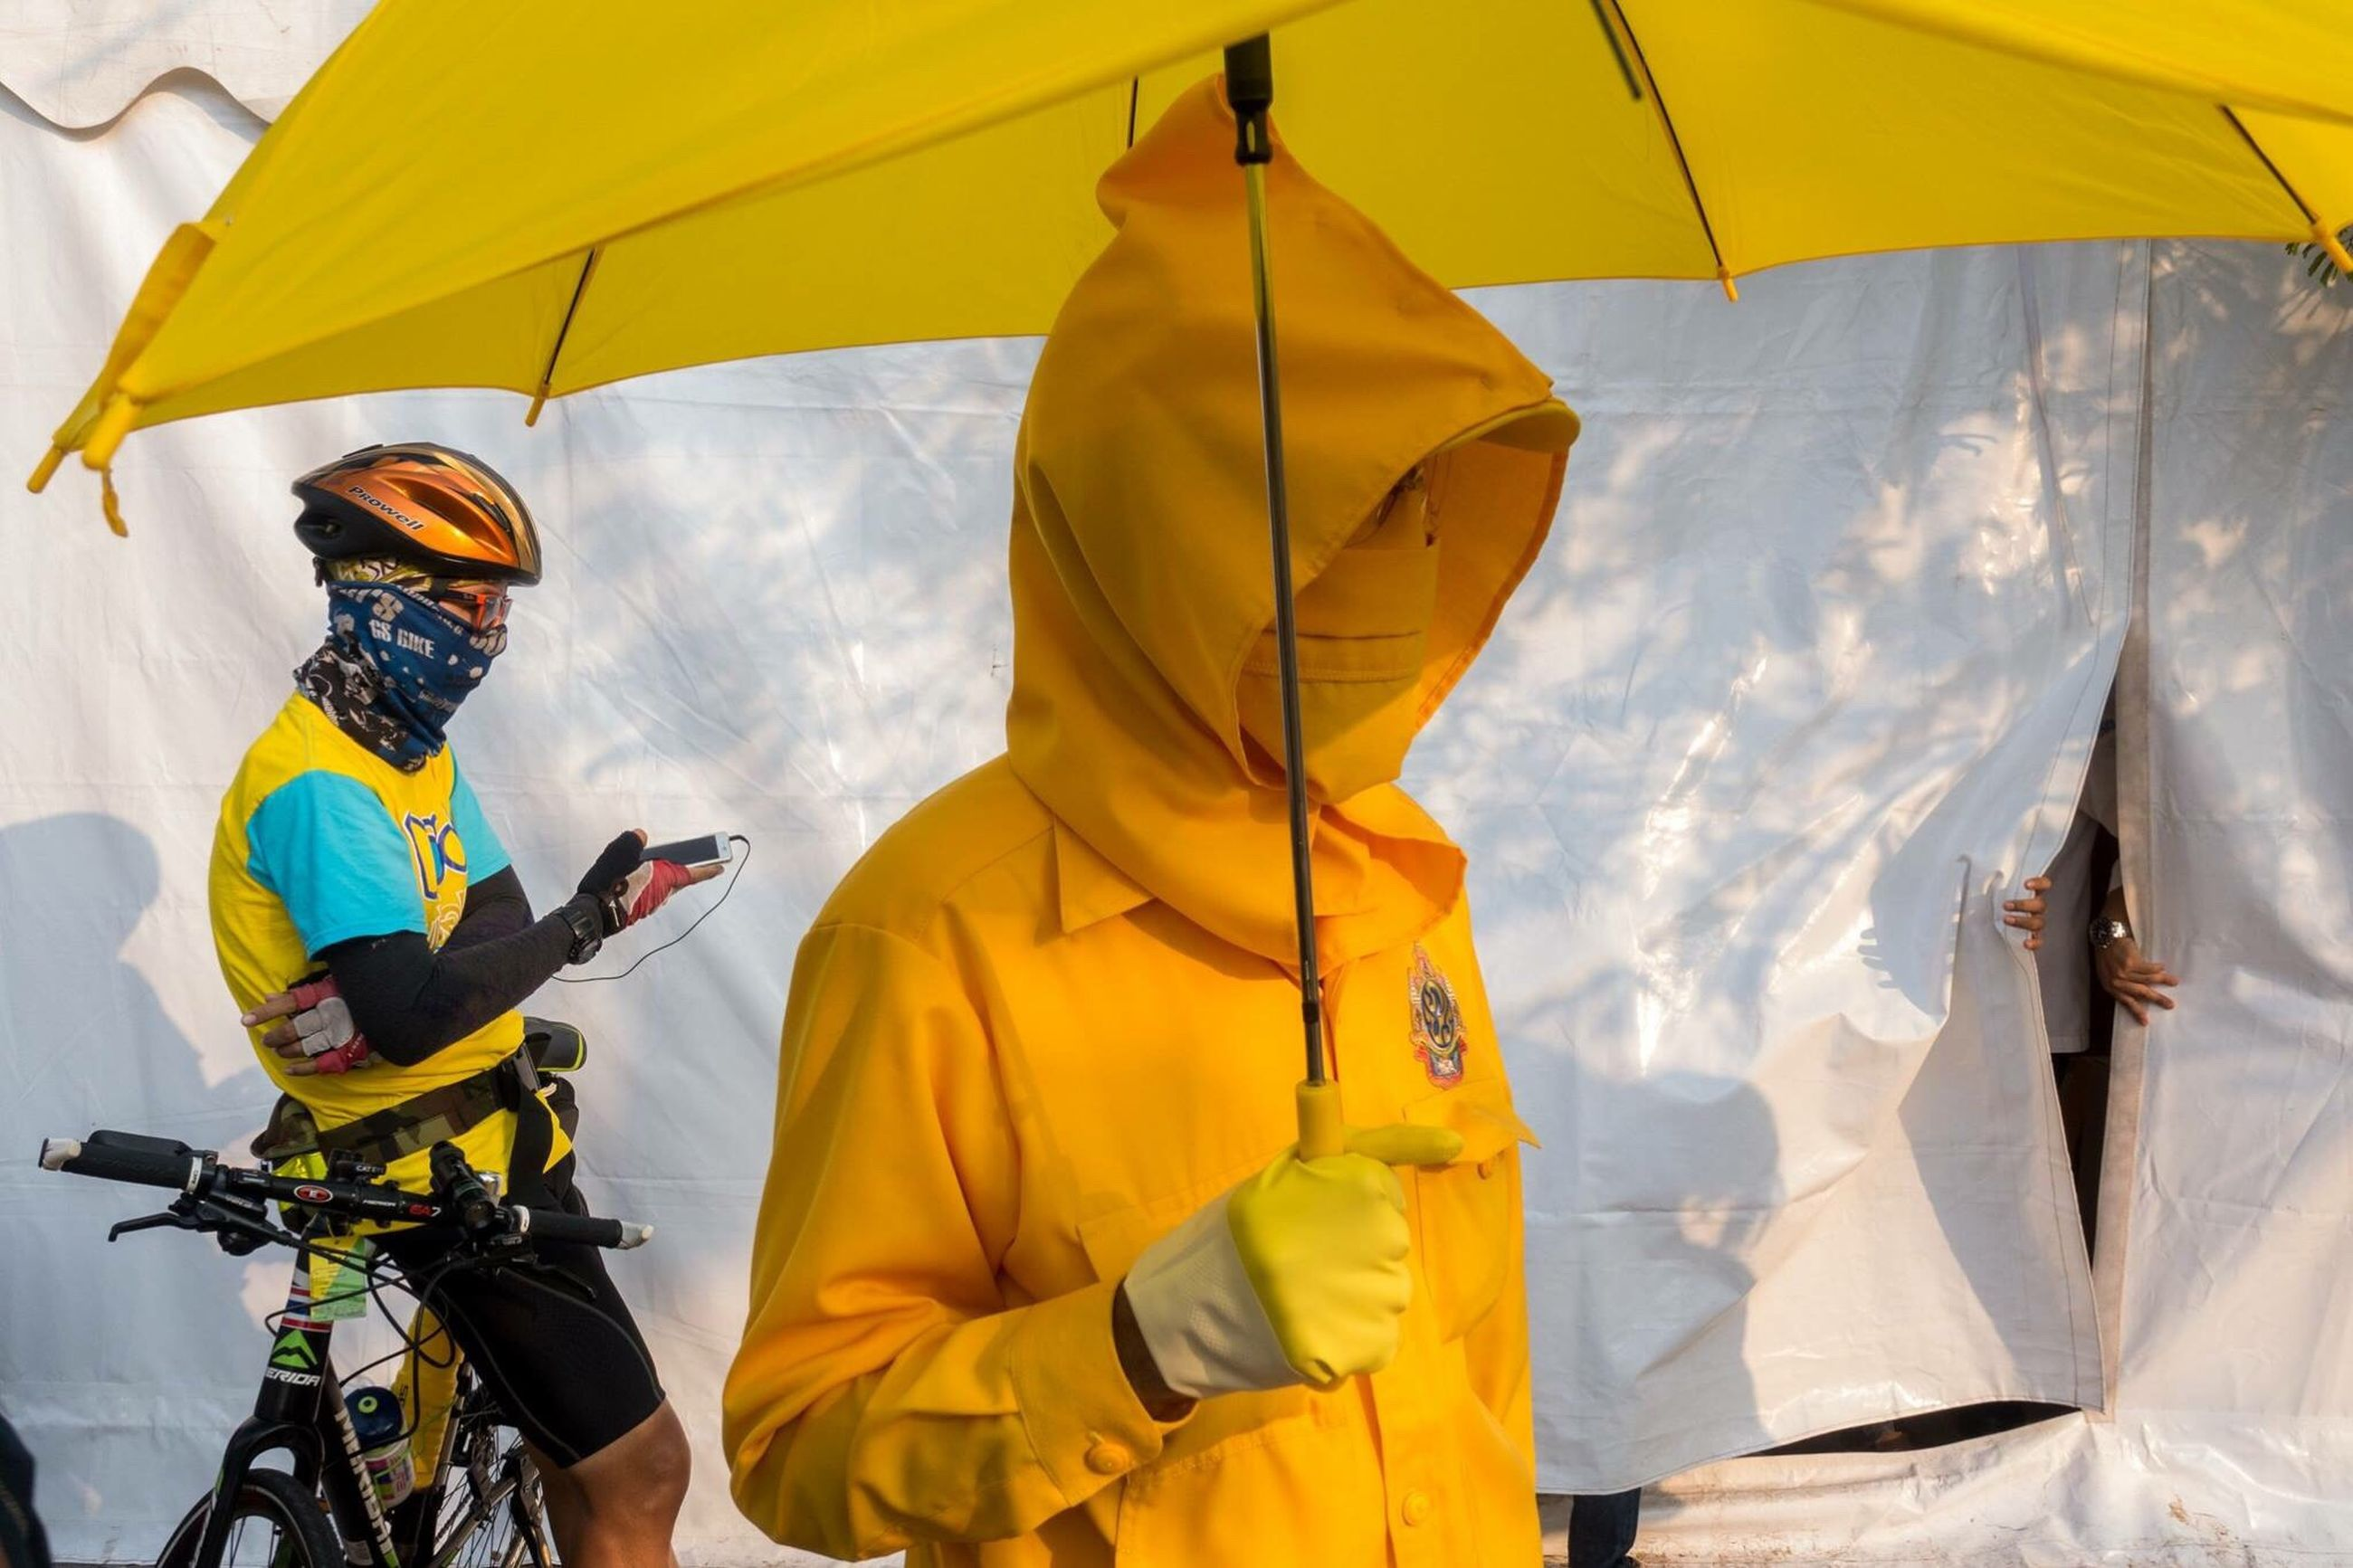 lifestyles, men, leisure activity, yellow, umbrella, adventure, low angle view, casual clothing, person, sky, holding, travel, hanging, fun, day, rear view, multi colored